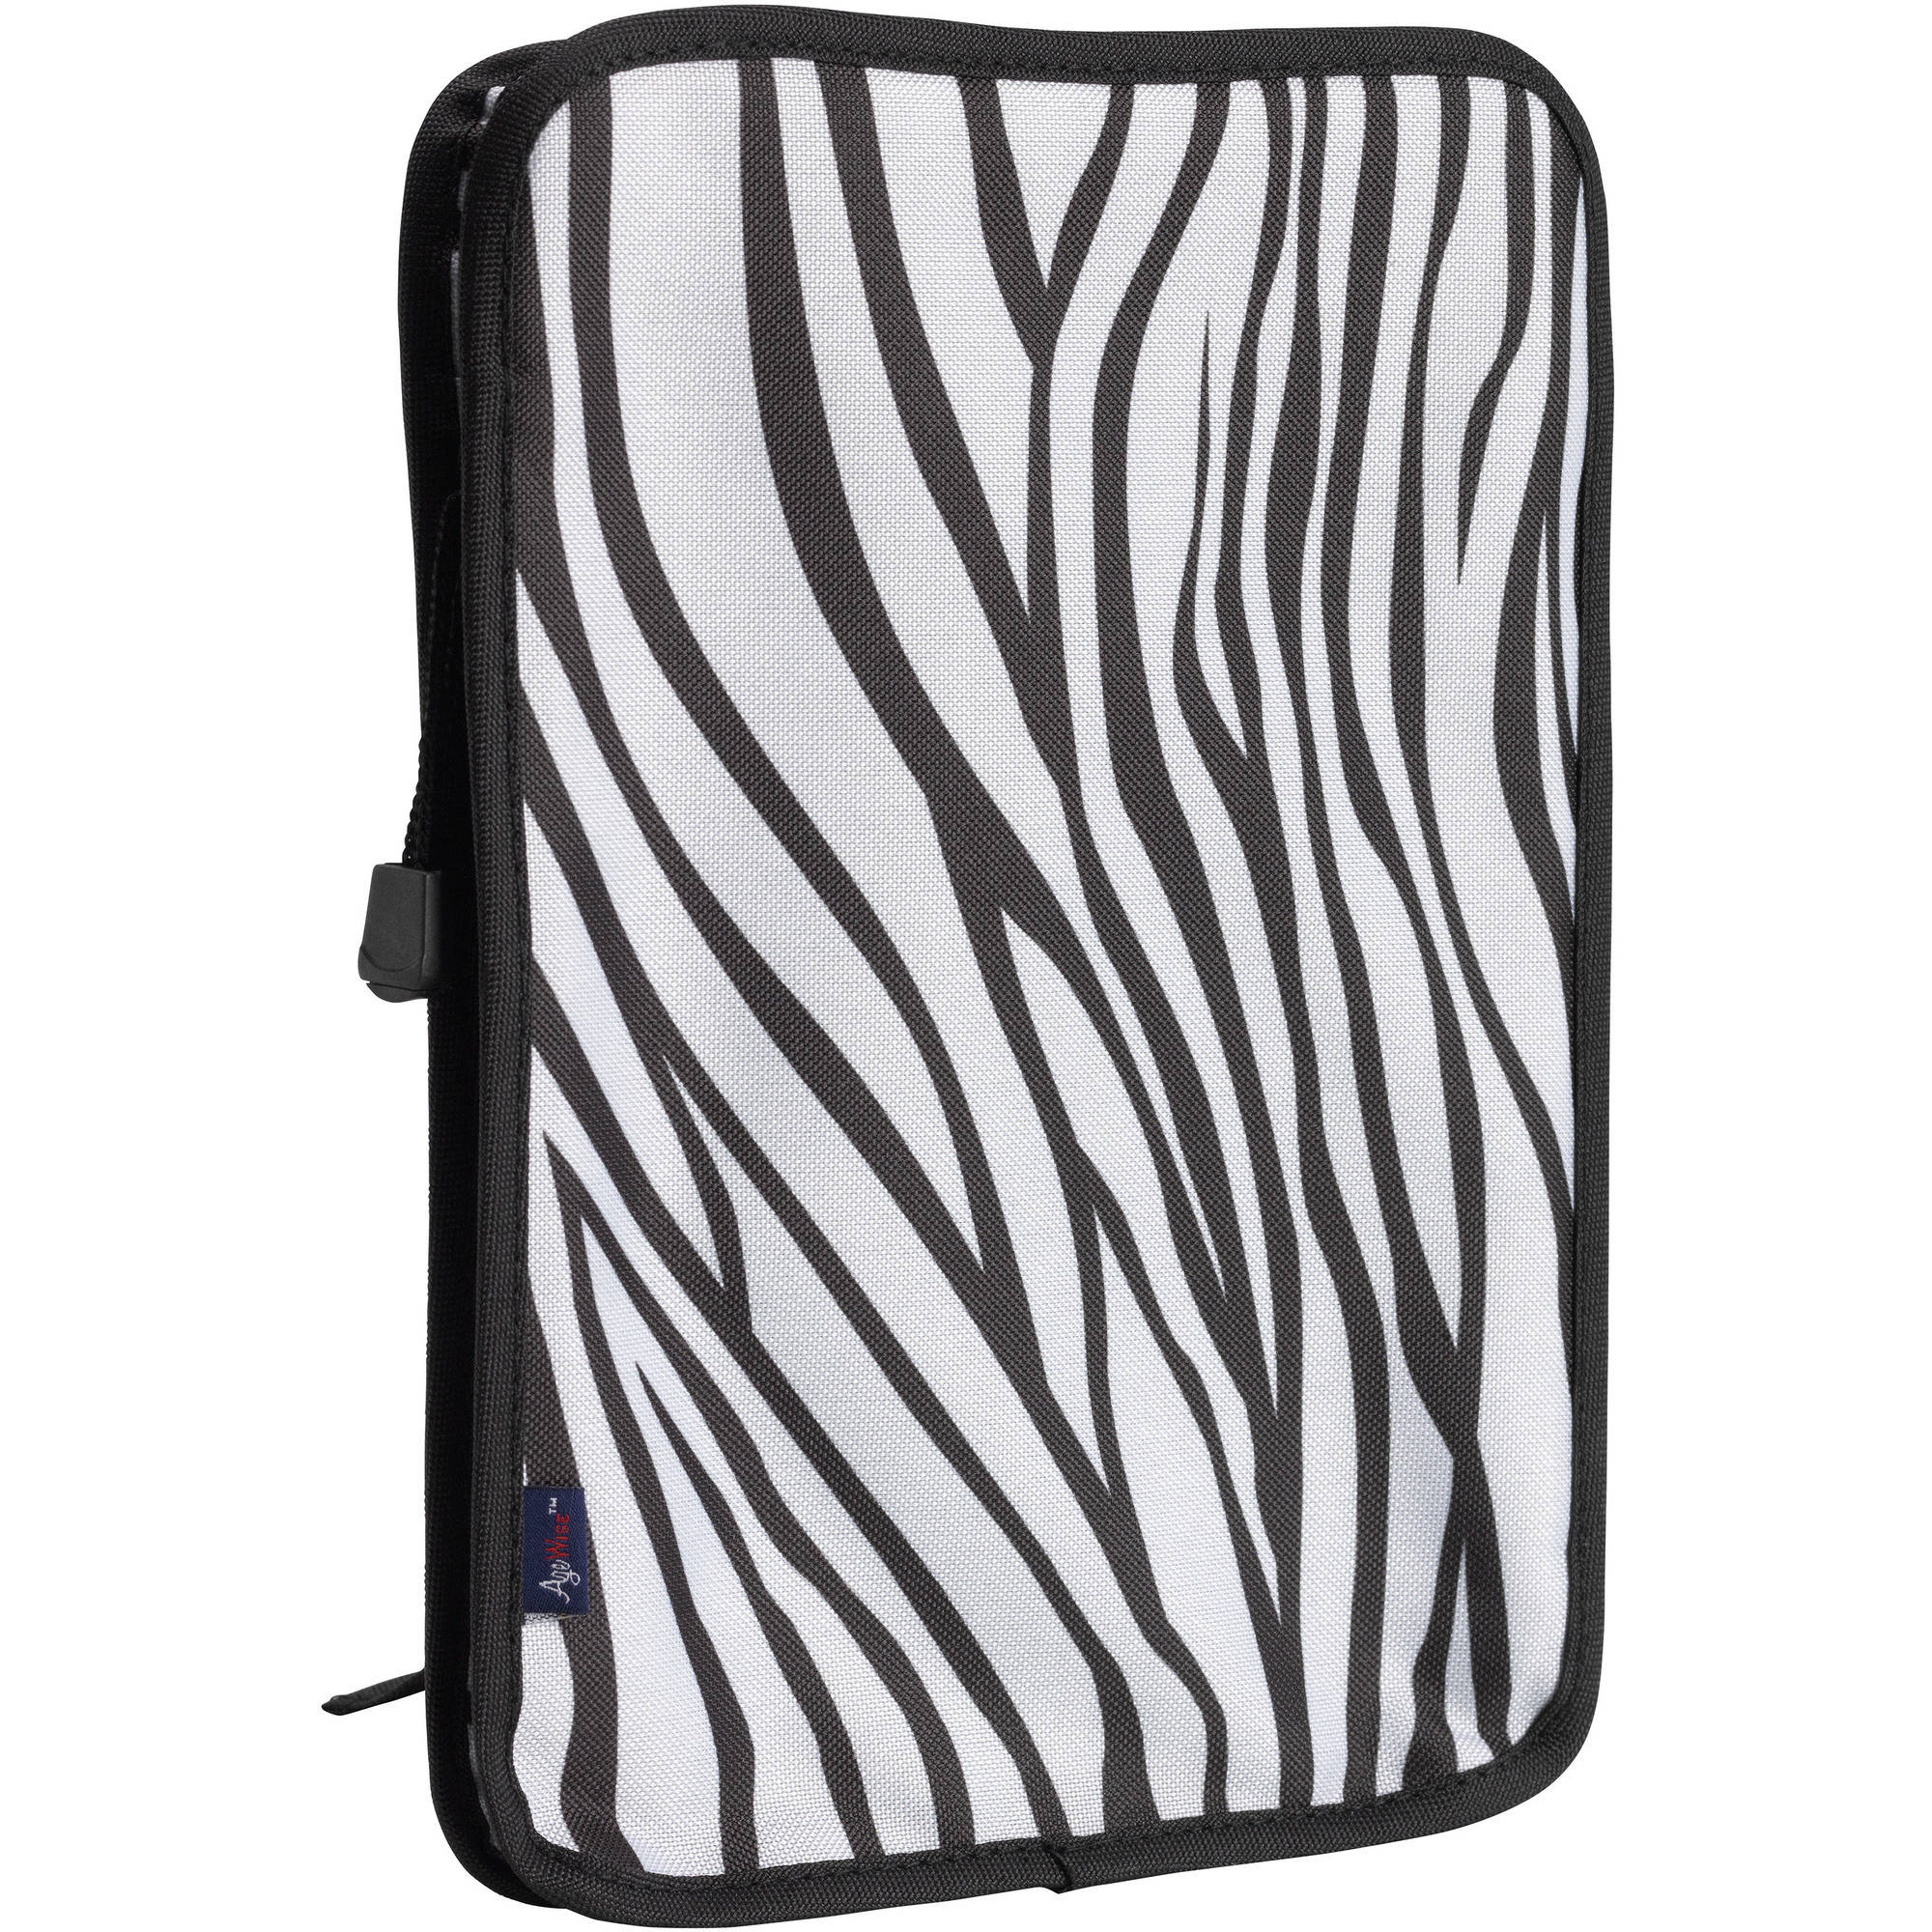 Drive Medical AgeWise Walker Rollator Personal Computer/Tablet Caddy, Zebra